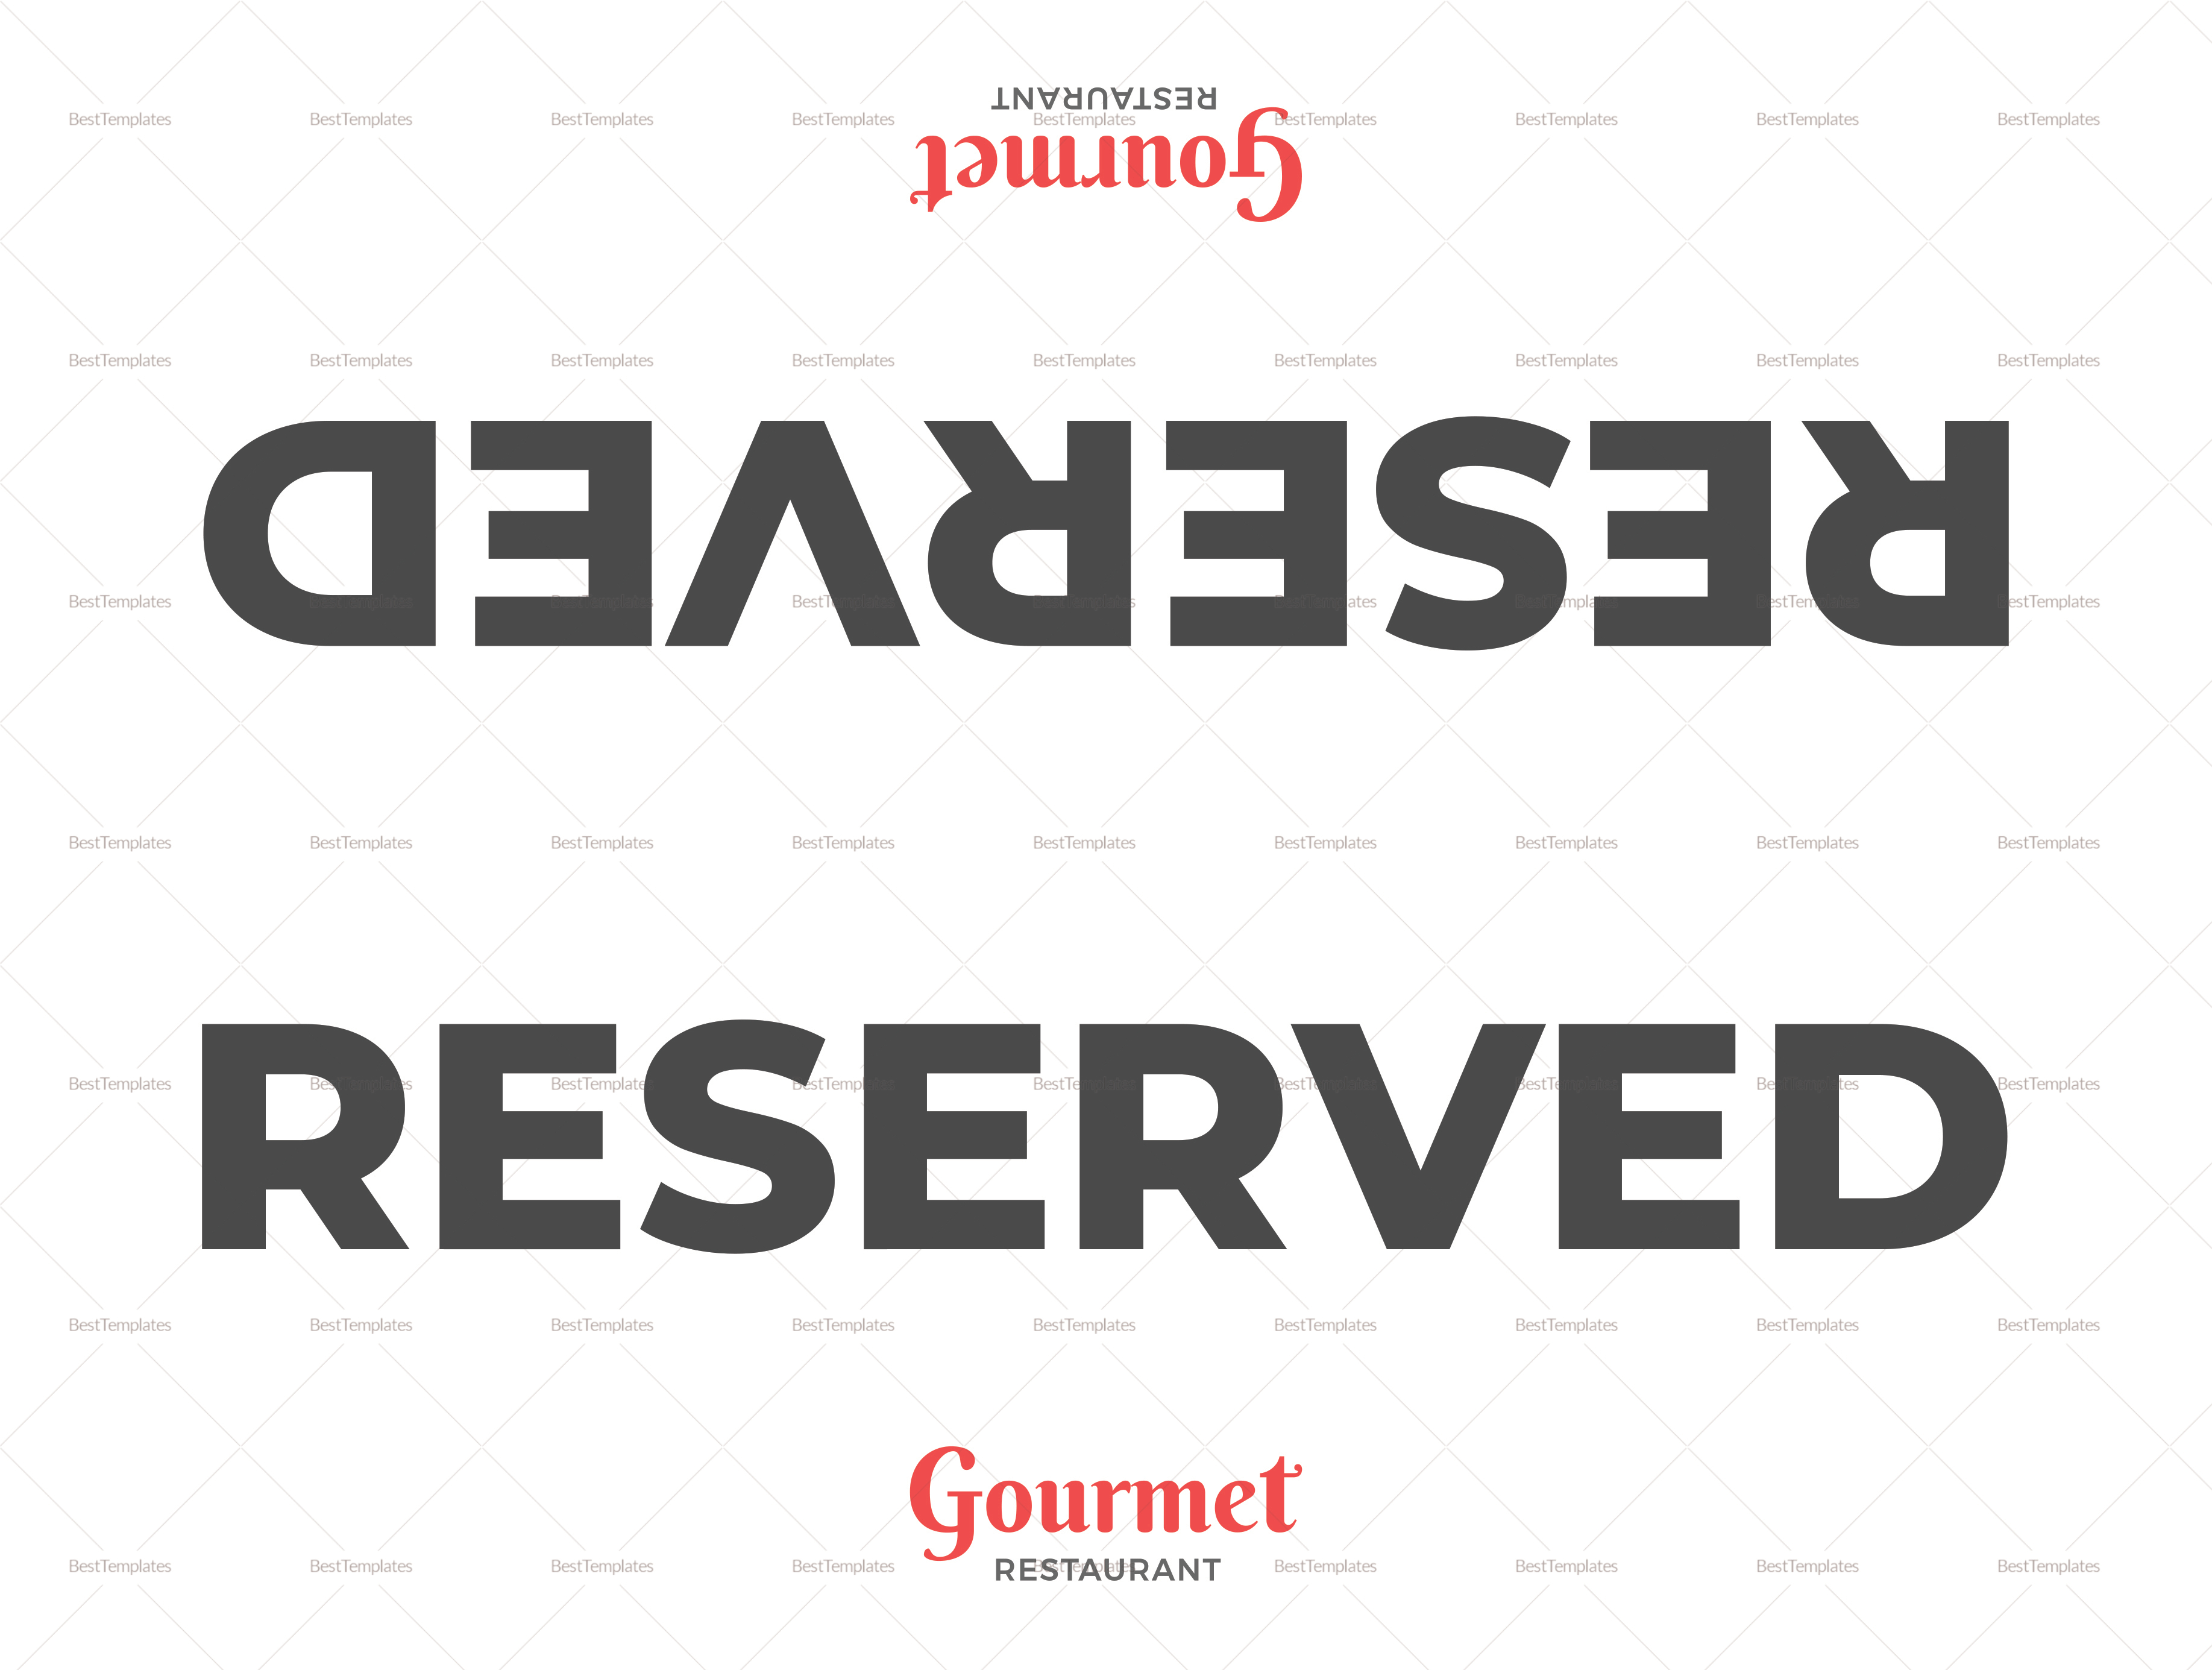 Restaurant Double-Sided Reserved Signs Template